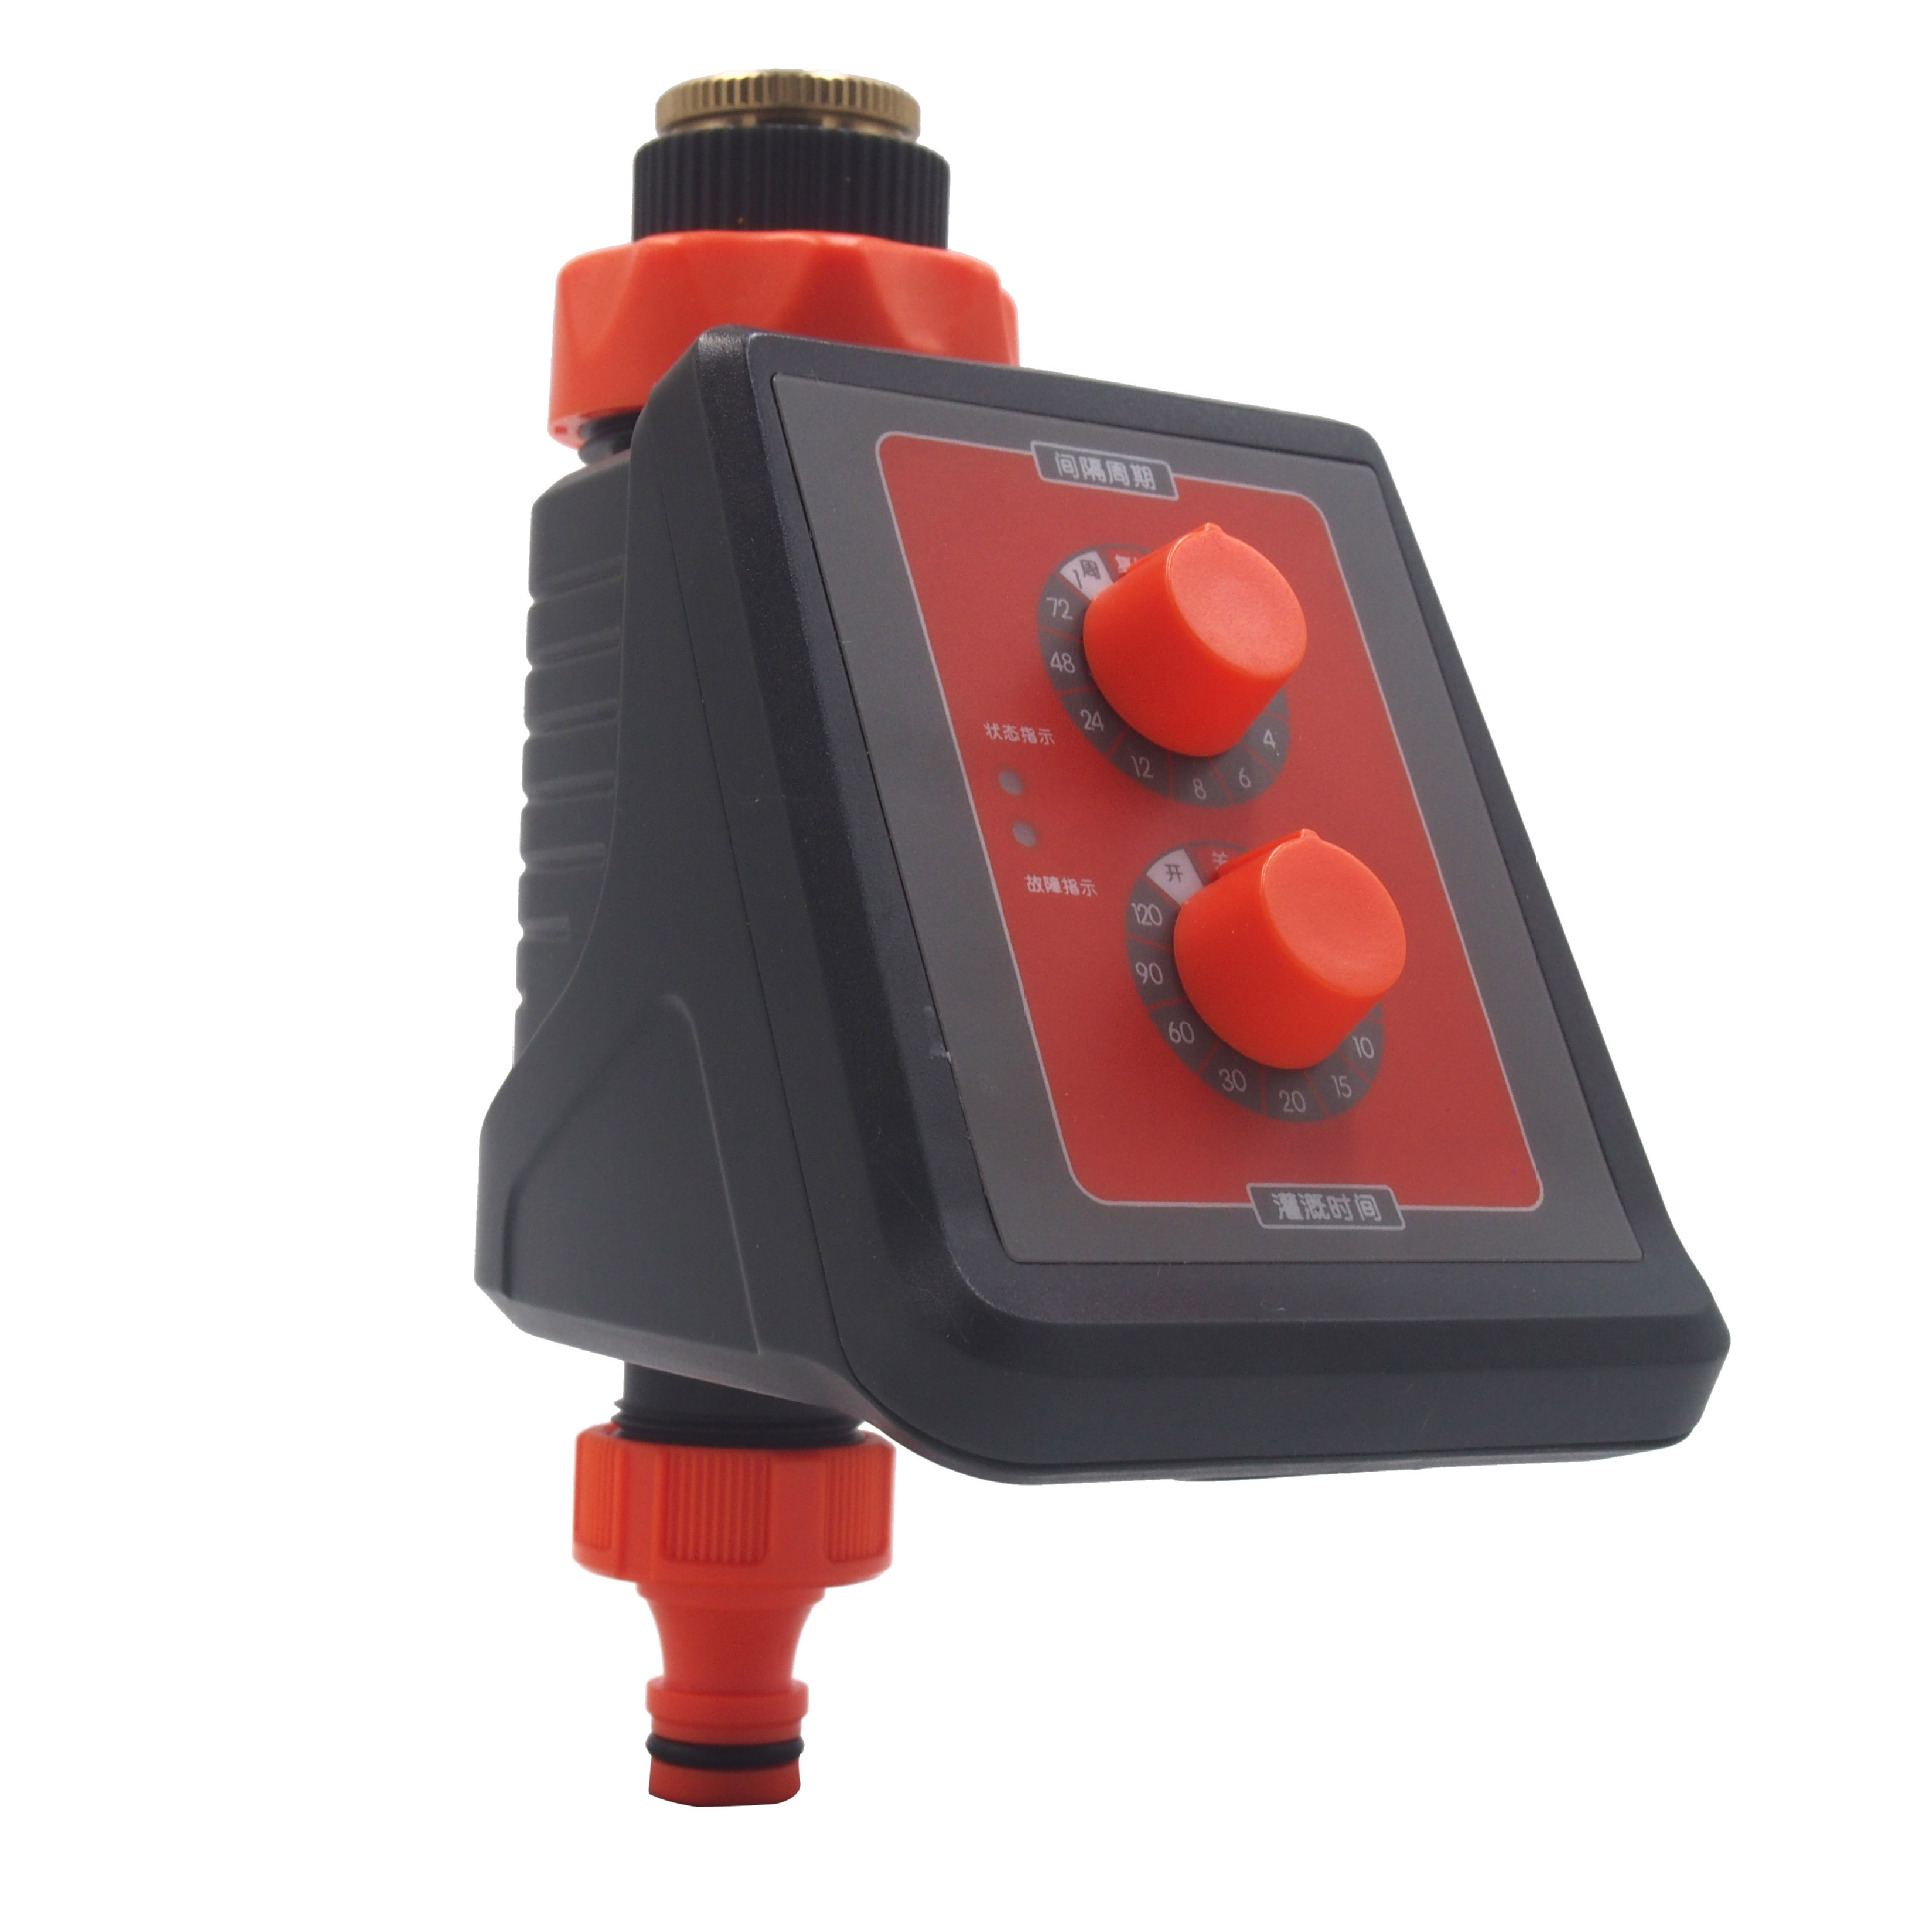 Simple Knob Irrigation Intelligent Timer Strong Waterproof Micro-sprinkler Irrigation Controller